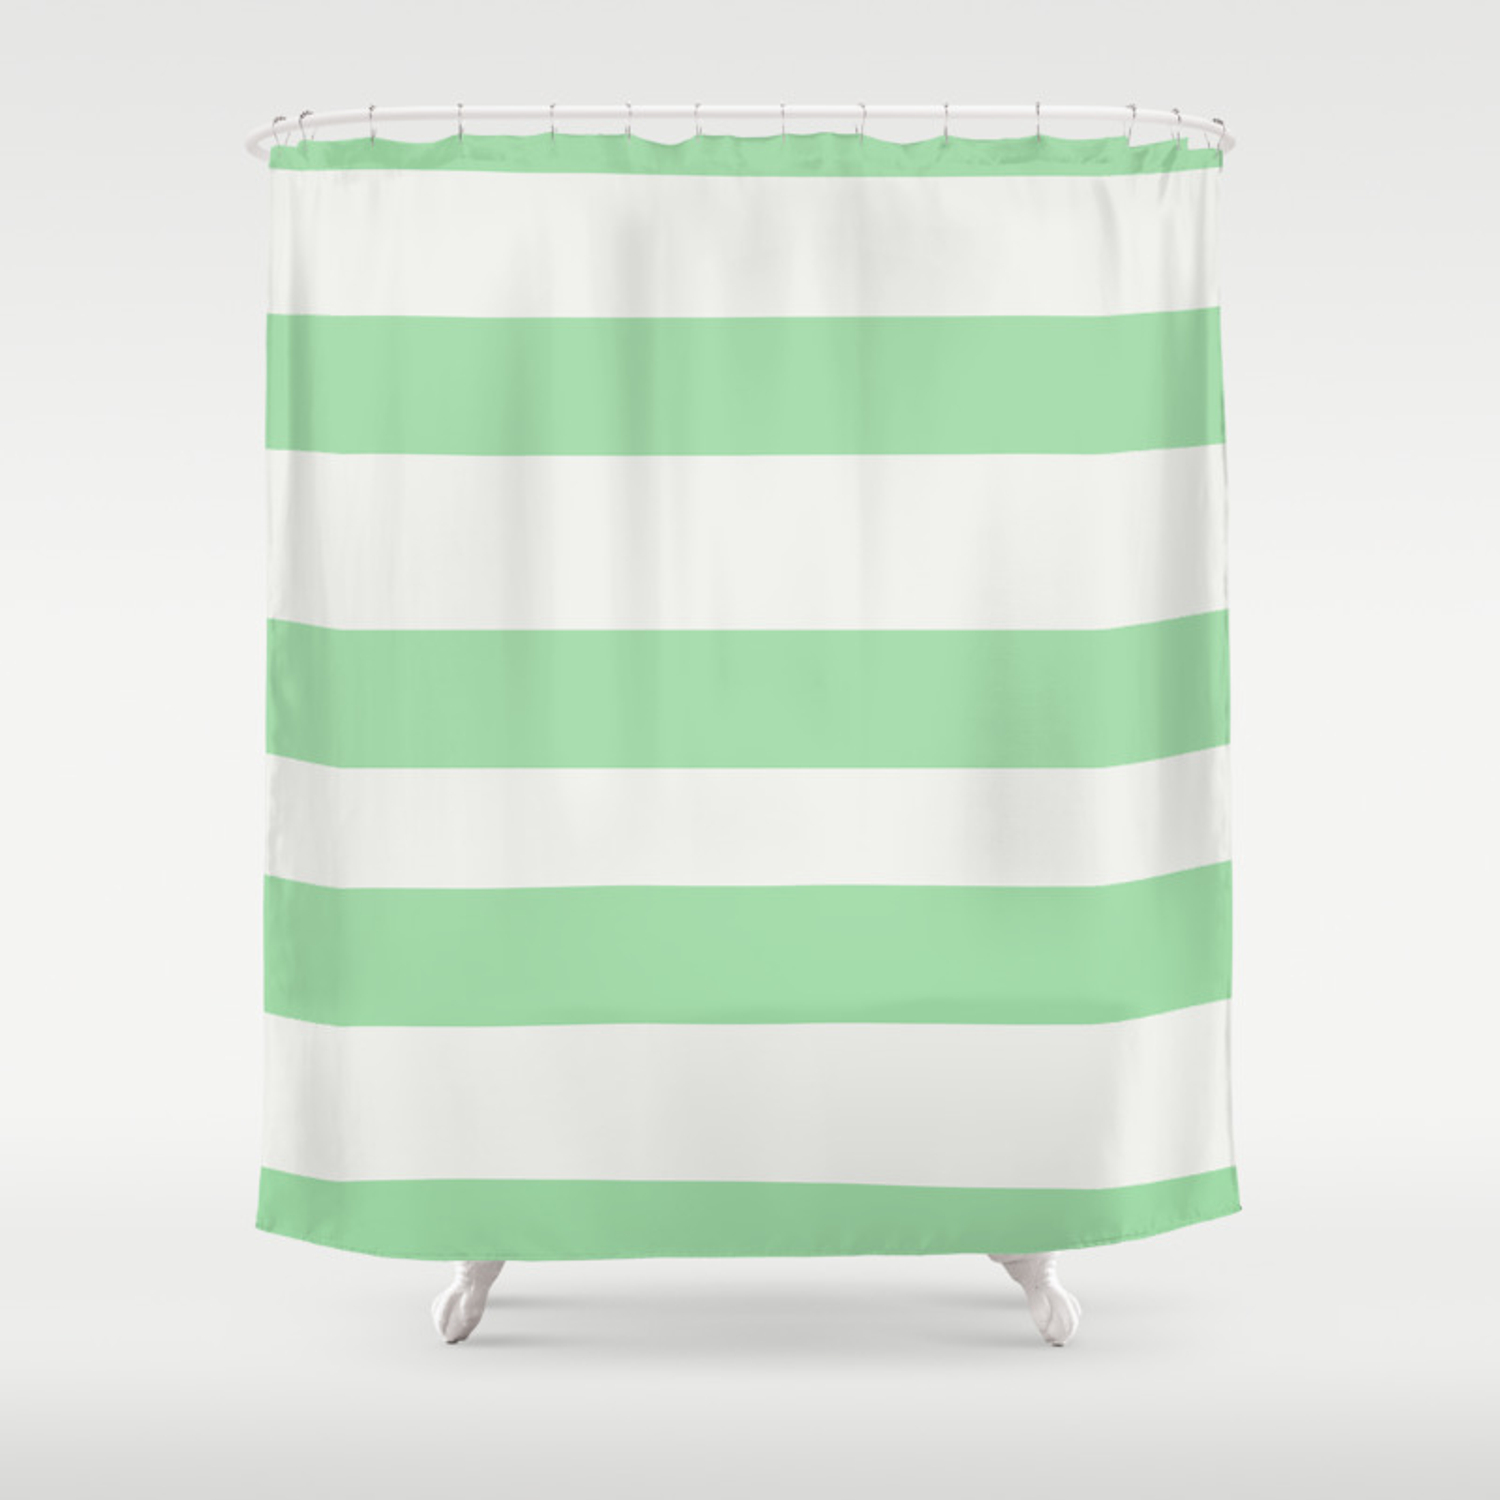 Linen Off White Pastel Melon Green Hand Drawn Fat Line Pattern 2020 Color Of The Year Neo Mint Shower Curtain